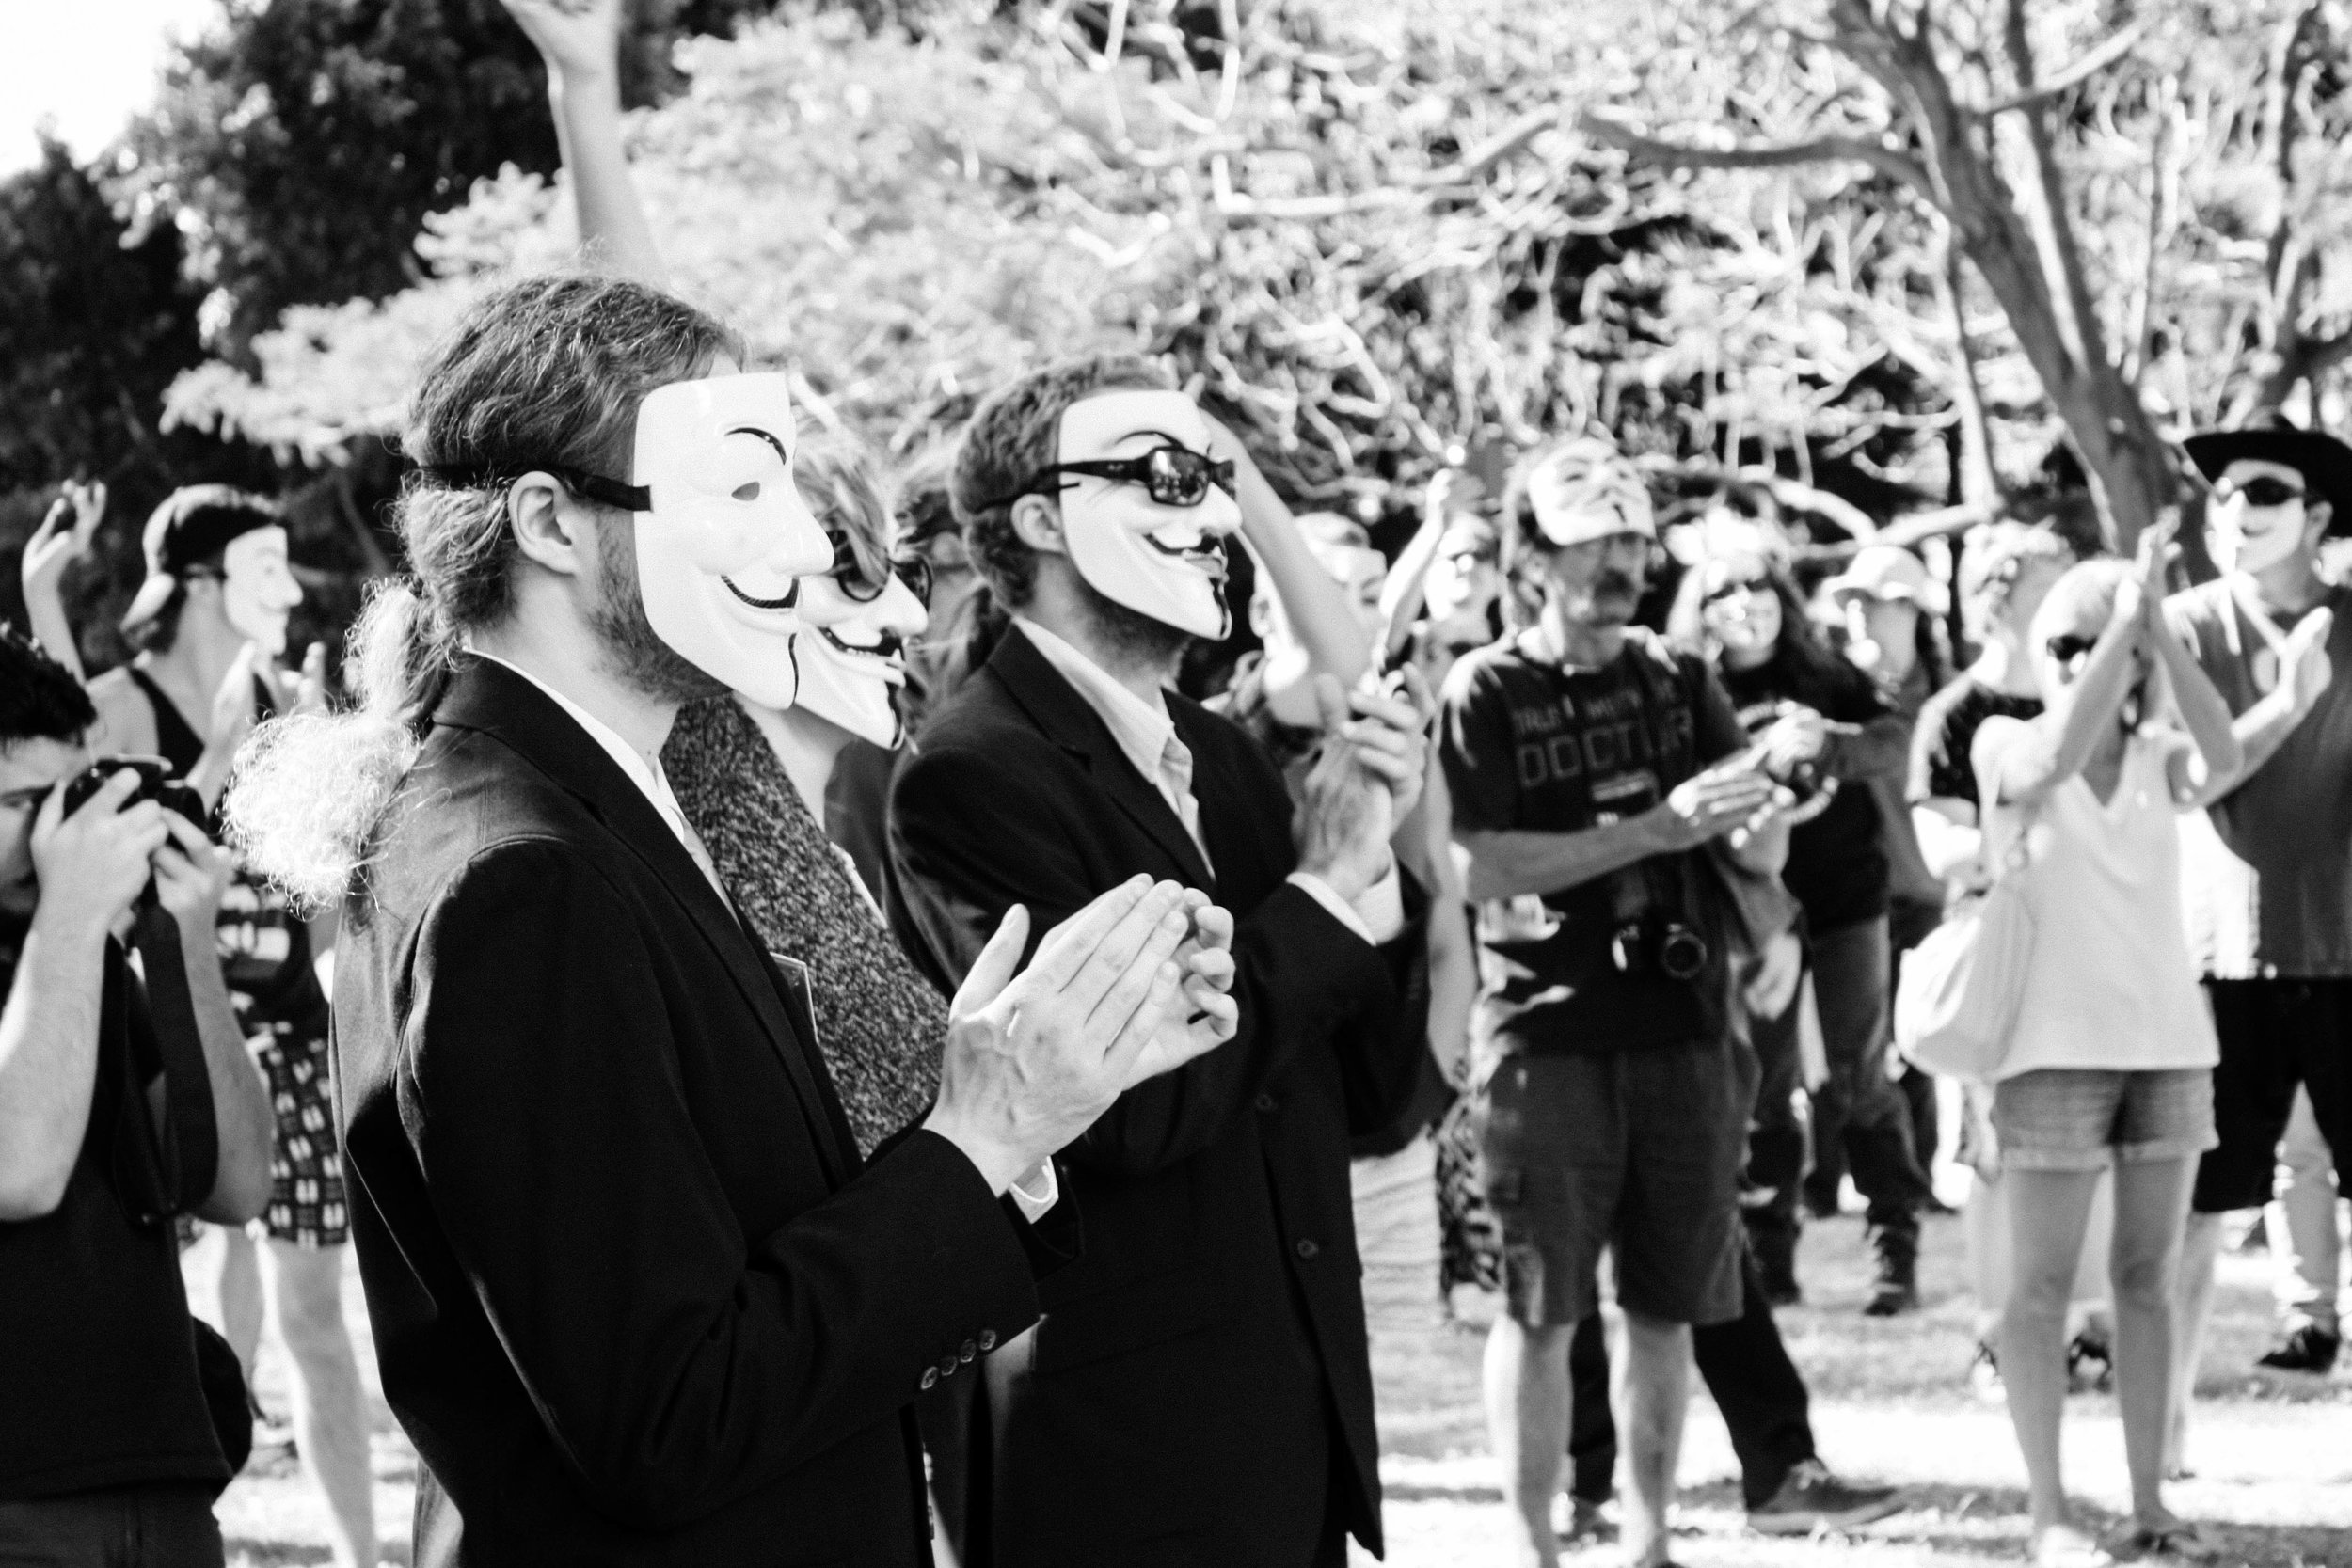 Lesly Lotha_Newzulu_Million_Mask_March_Brisbane_Australia_07